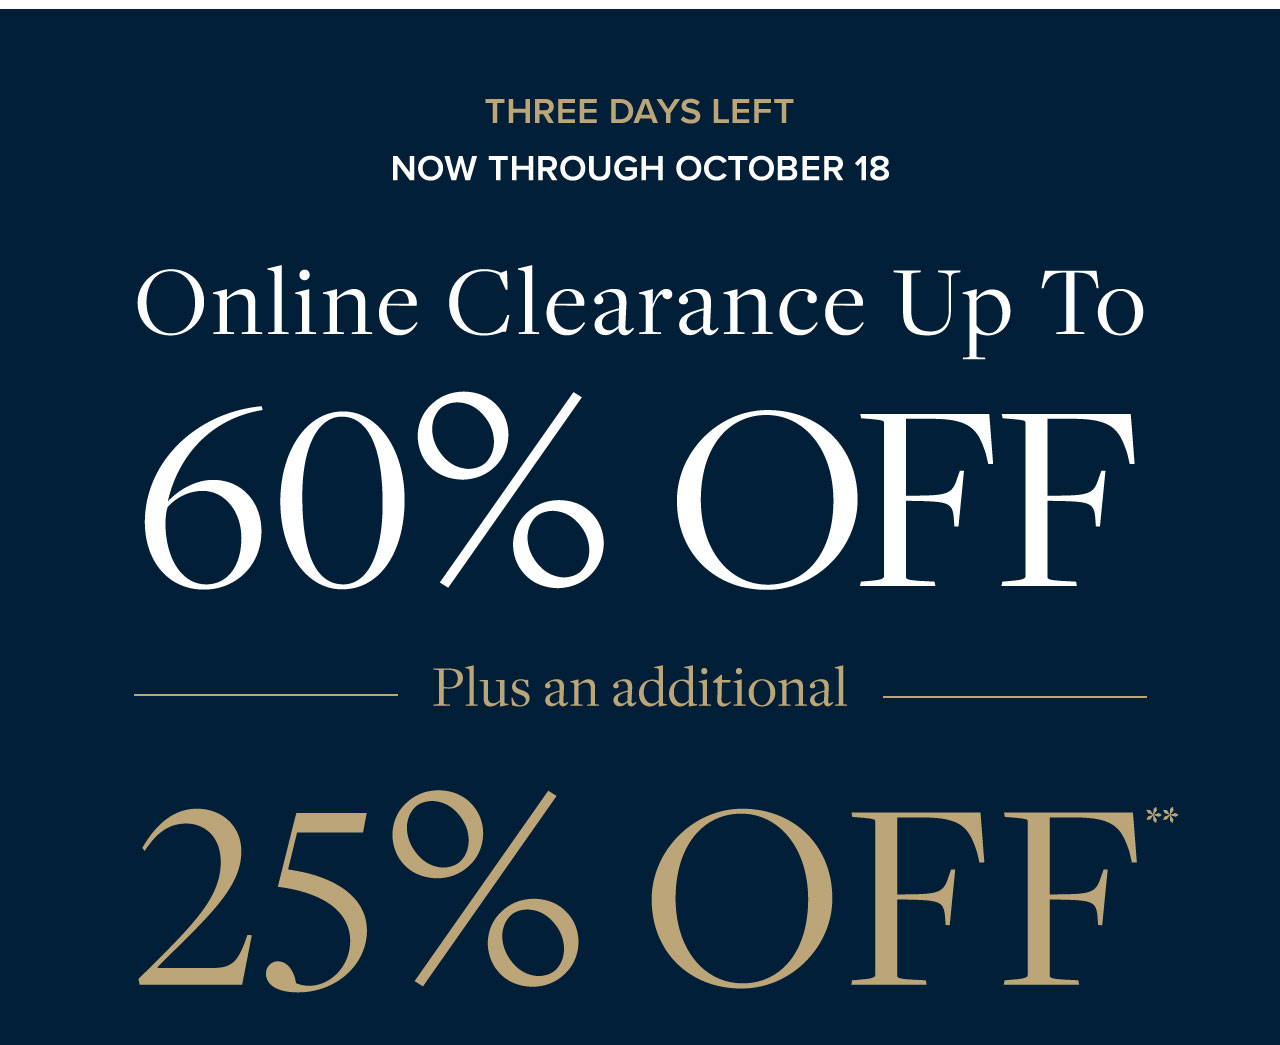 Three Days Left Now Through October 18 Online Clearance Up to 60% Off Plus an additional 25% Off.